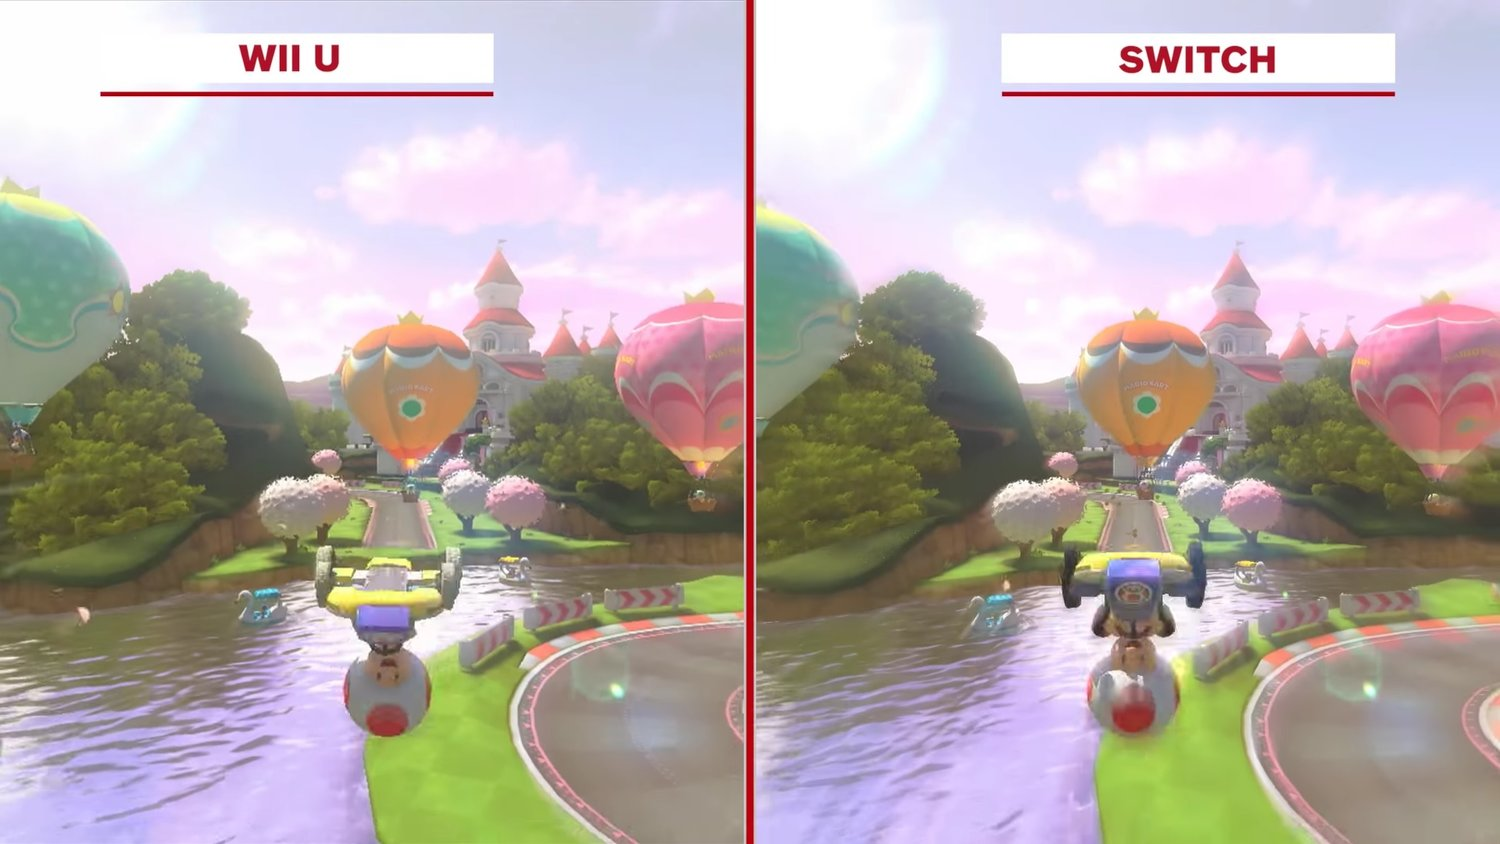 Take A Look At Mario Kart Deluxe On Wii U And Switch